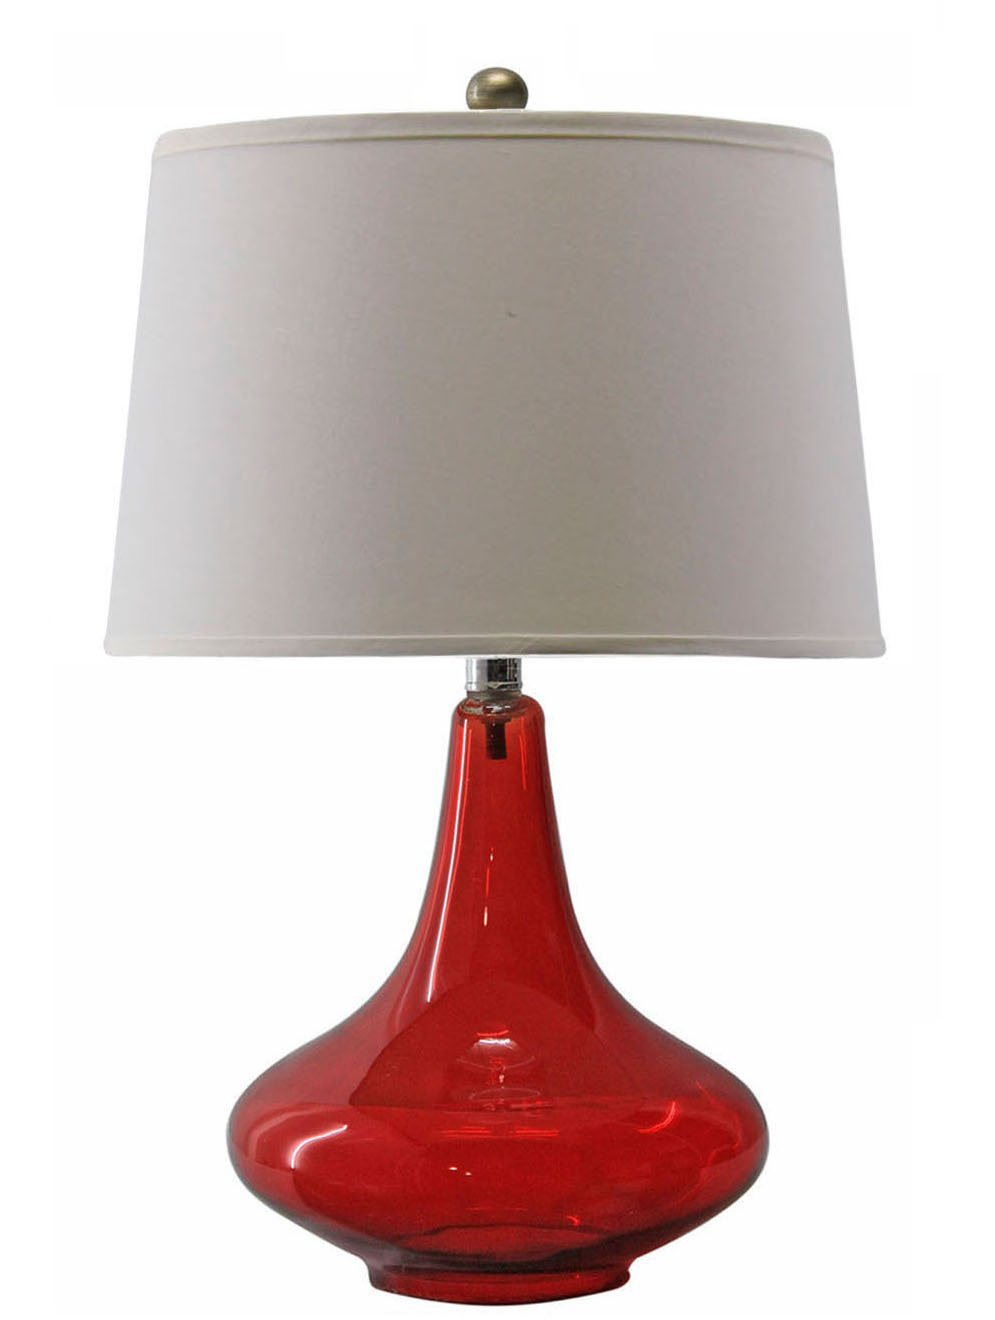 Lampe Rot China Modern Red Glass Desk Lamp With Fabric Shade - China